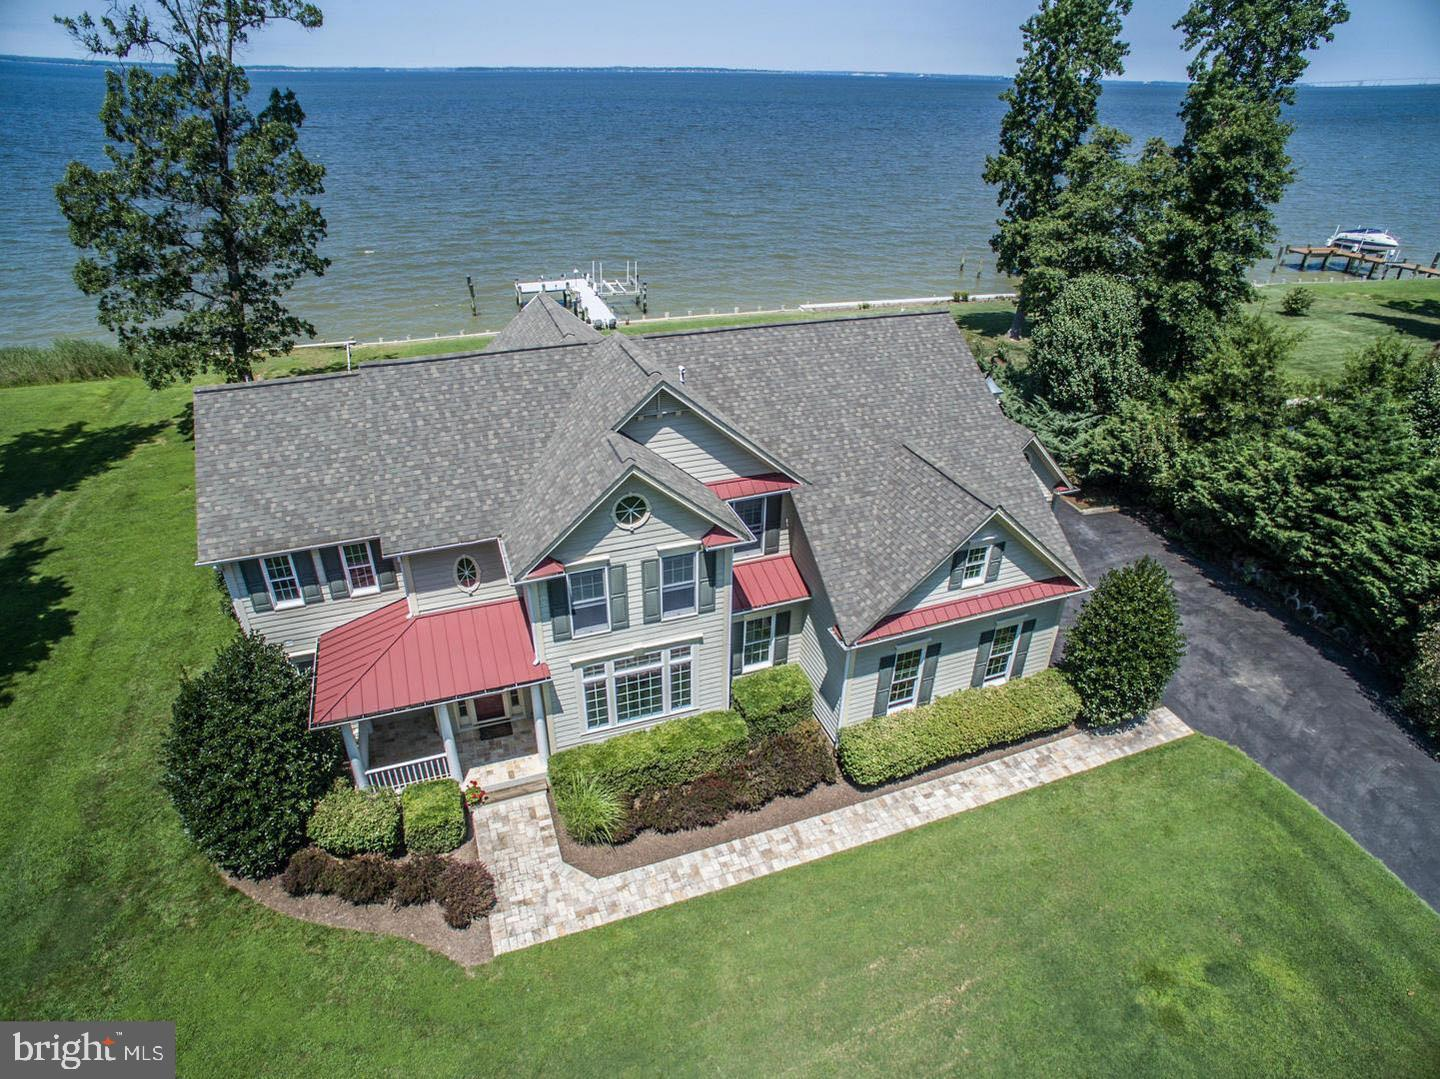 249 LIGHTHOUSE VIEW DRIVE, STEVENSVILLE, MD 21666